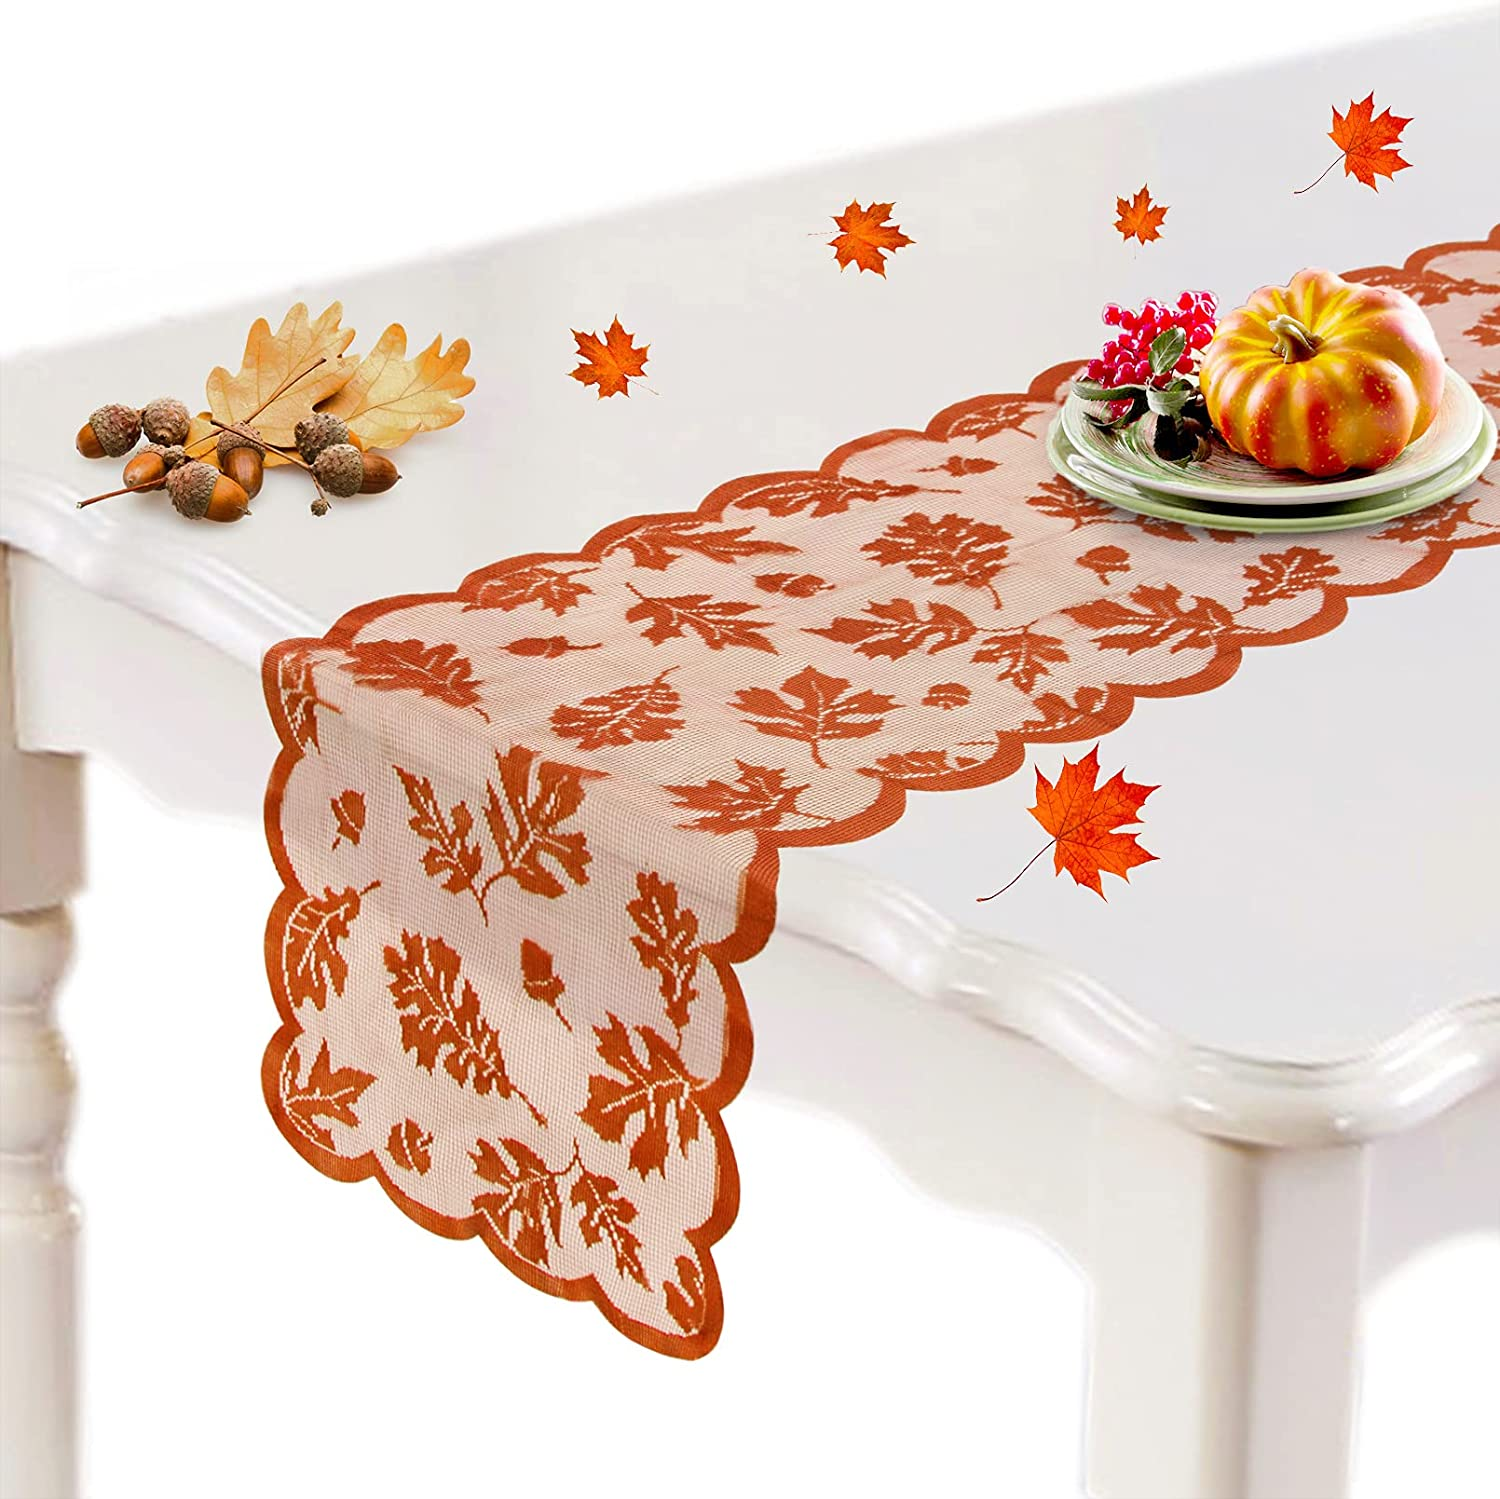 Ouddy Fall Table Runner, Thanksgiving Table Runner Decorations 13 x 72 Inch for Home with Maple Leaves Harvest Lace Table Runner Fall Decor for Thanksgiving Holiday Dinner Party